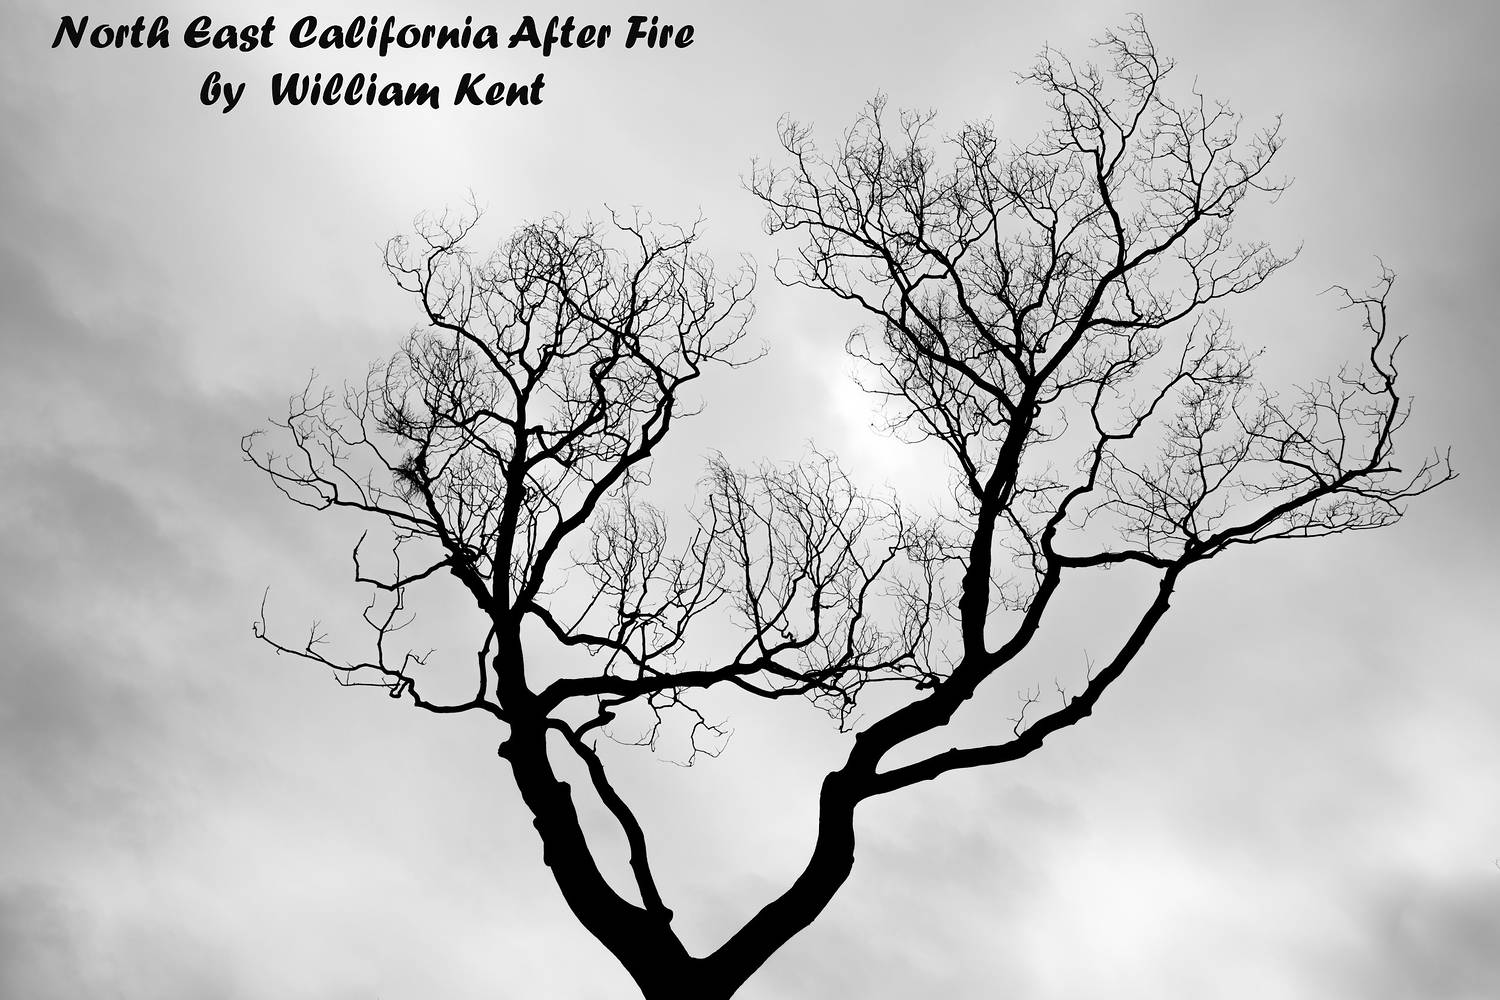 North East California After Fire by William Kent